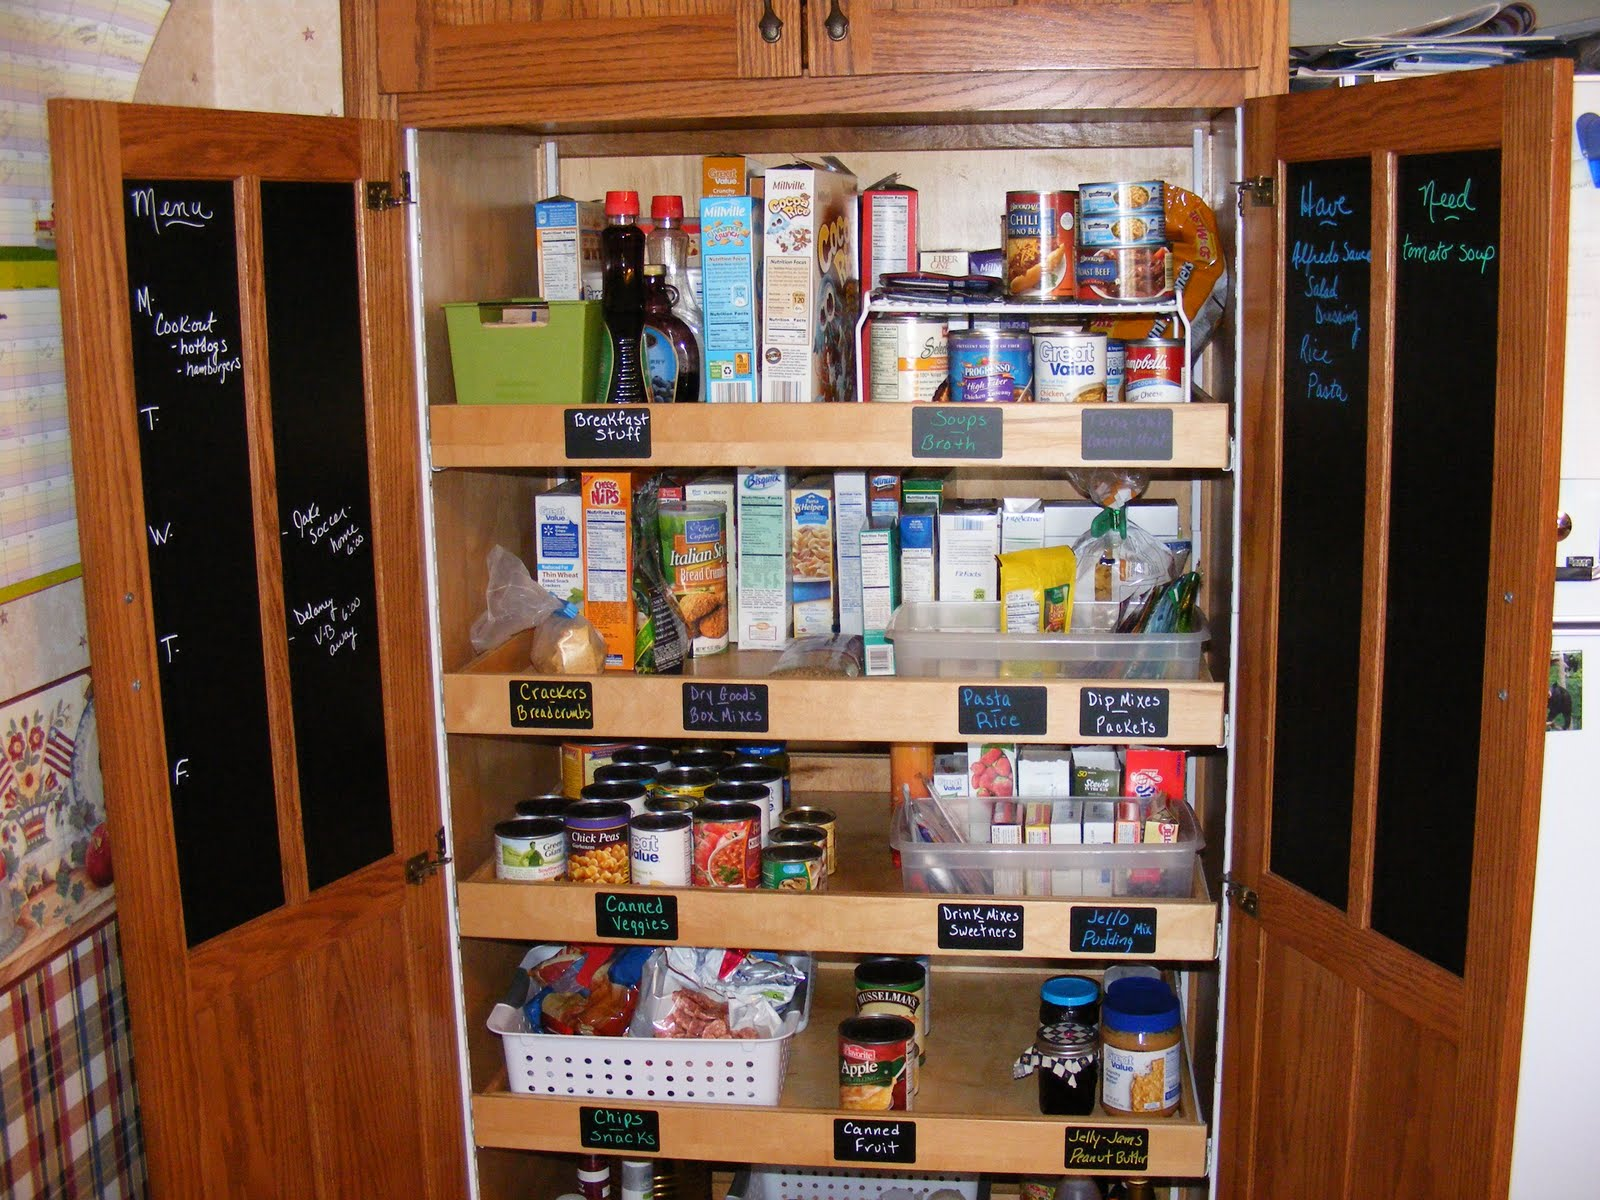 The awesome Kitchen storage pantry cabinet picture digital imagery